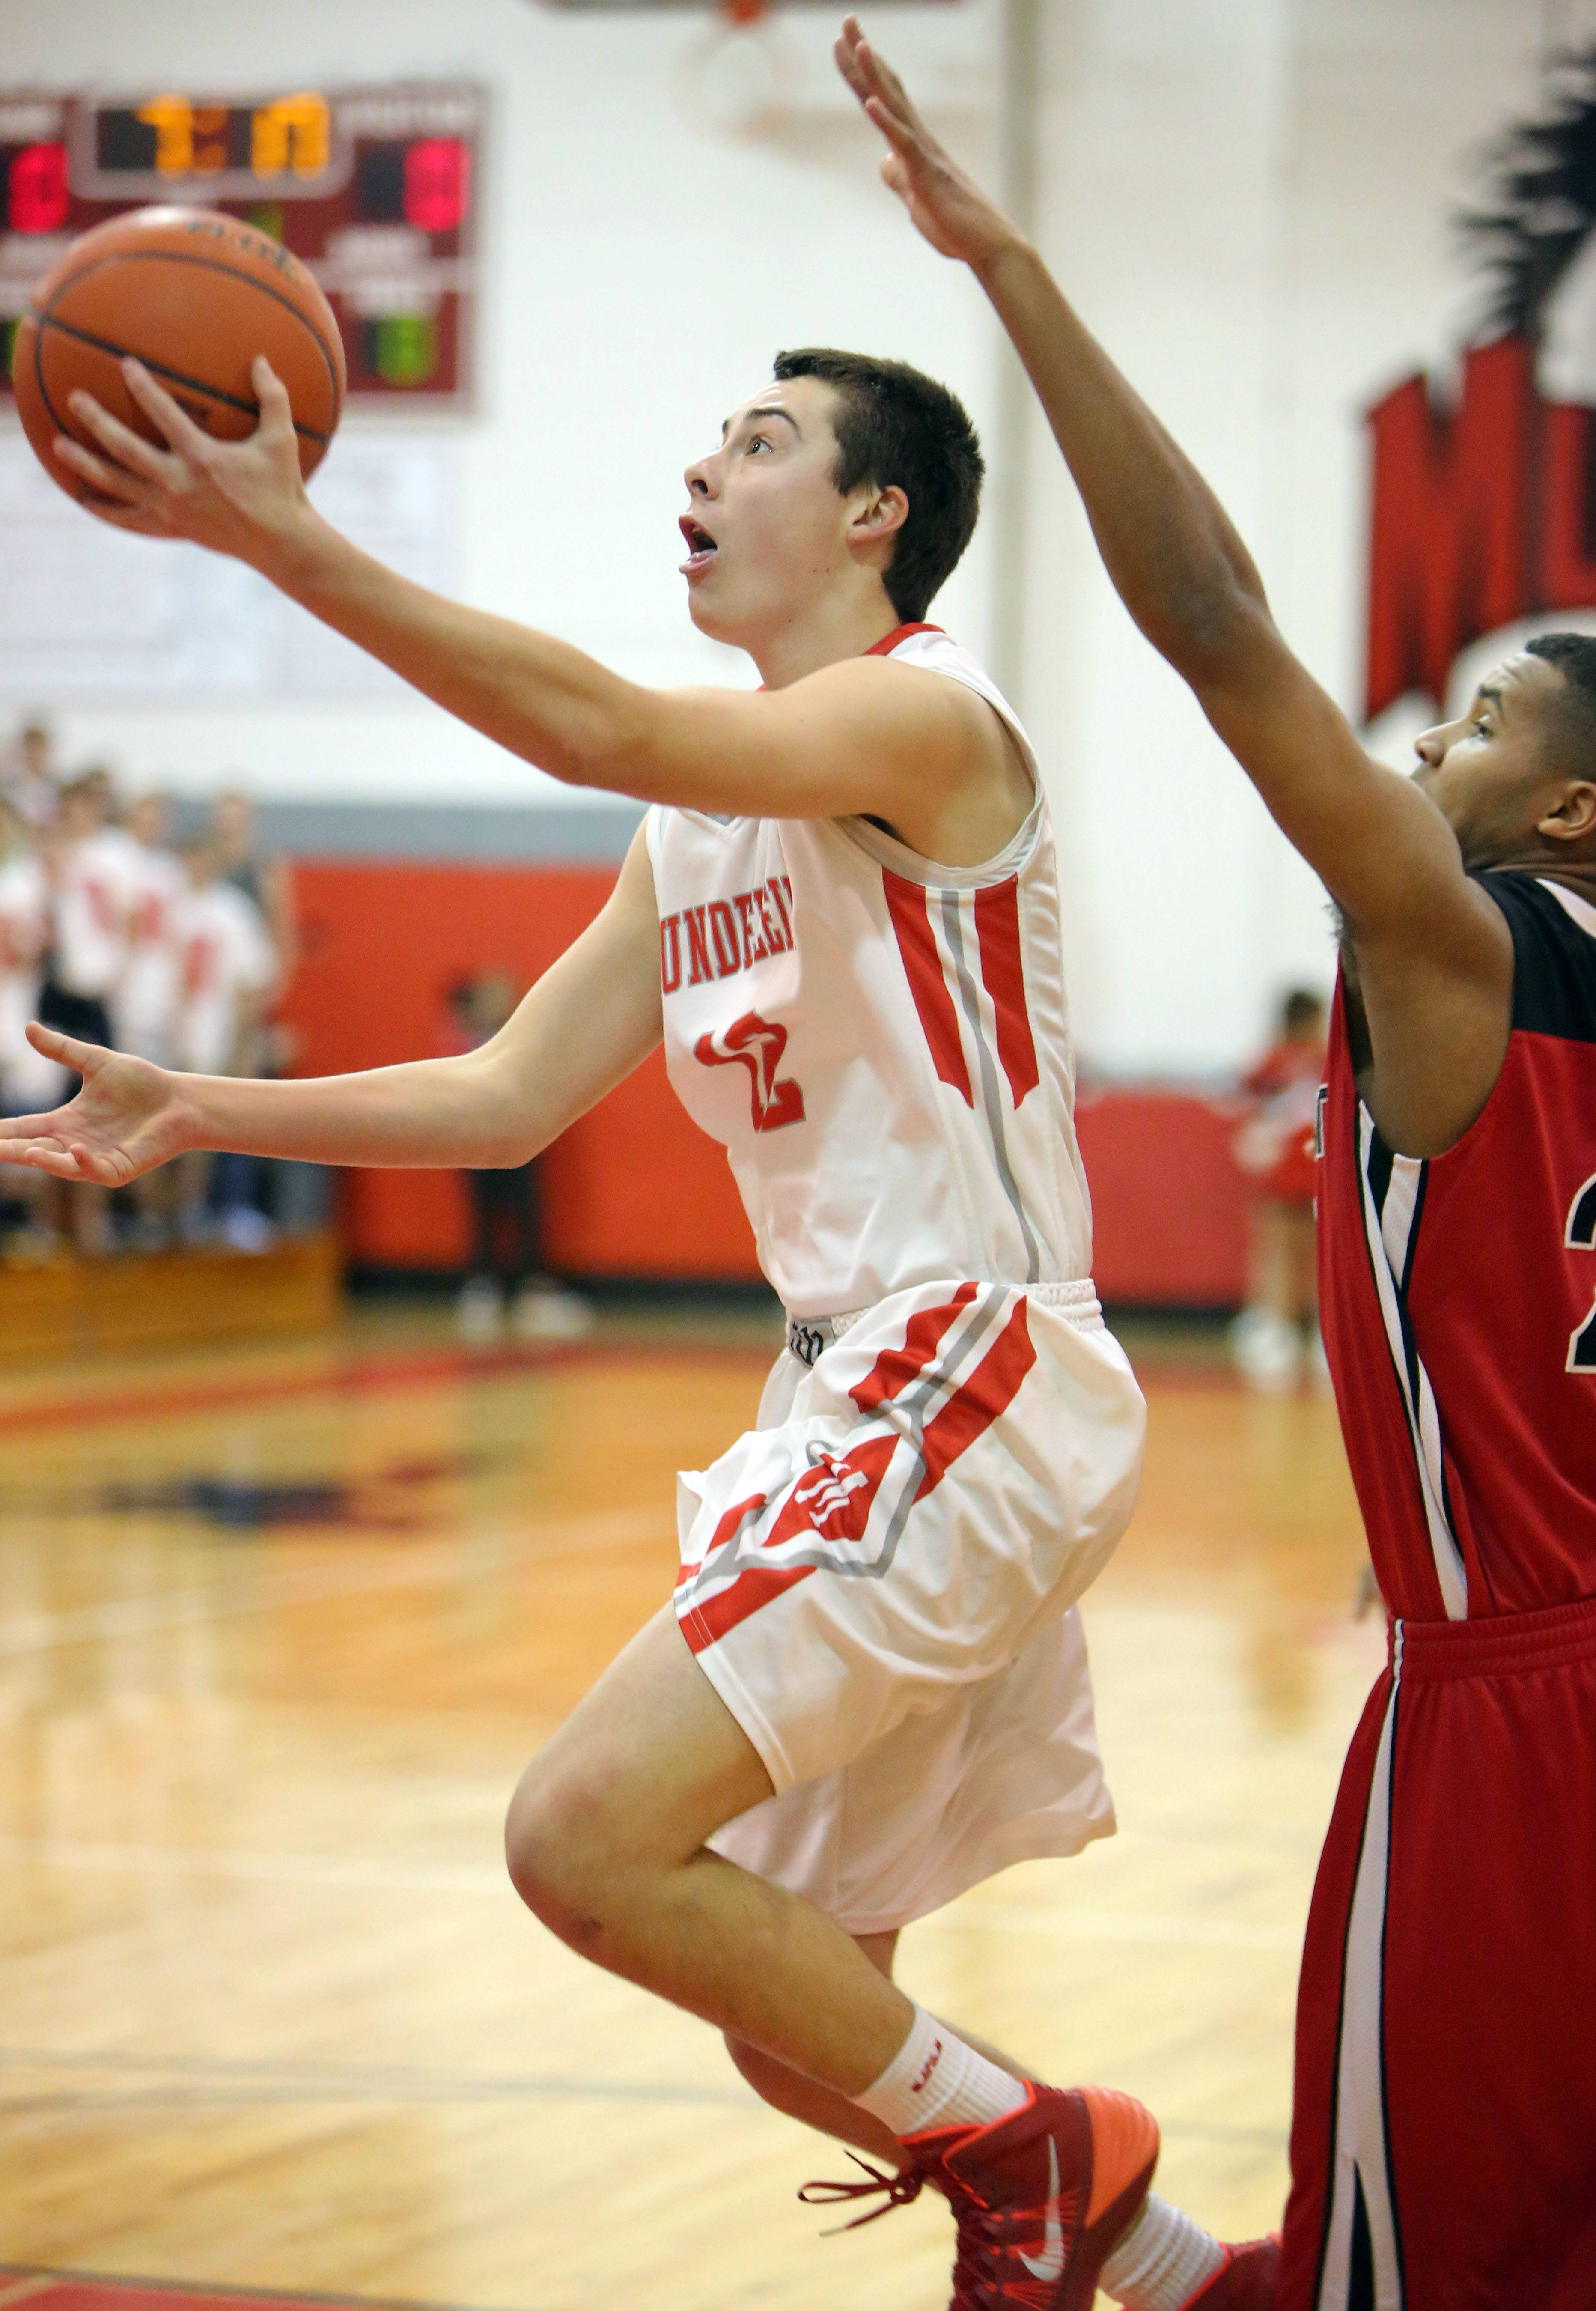 Mundelein's Derek Parola, left, drives to the hoop past Grant's Steve Dunning.